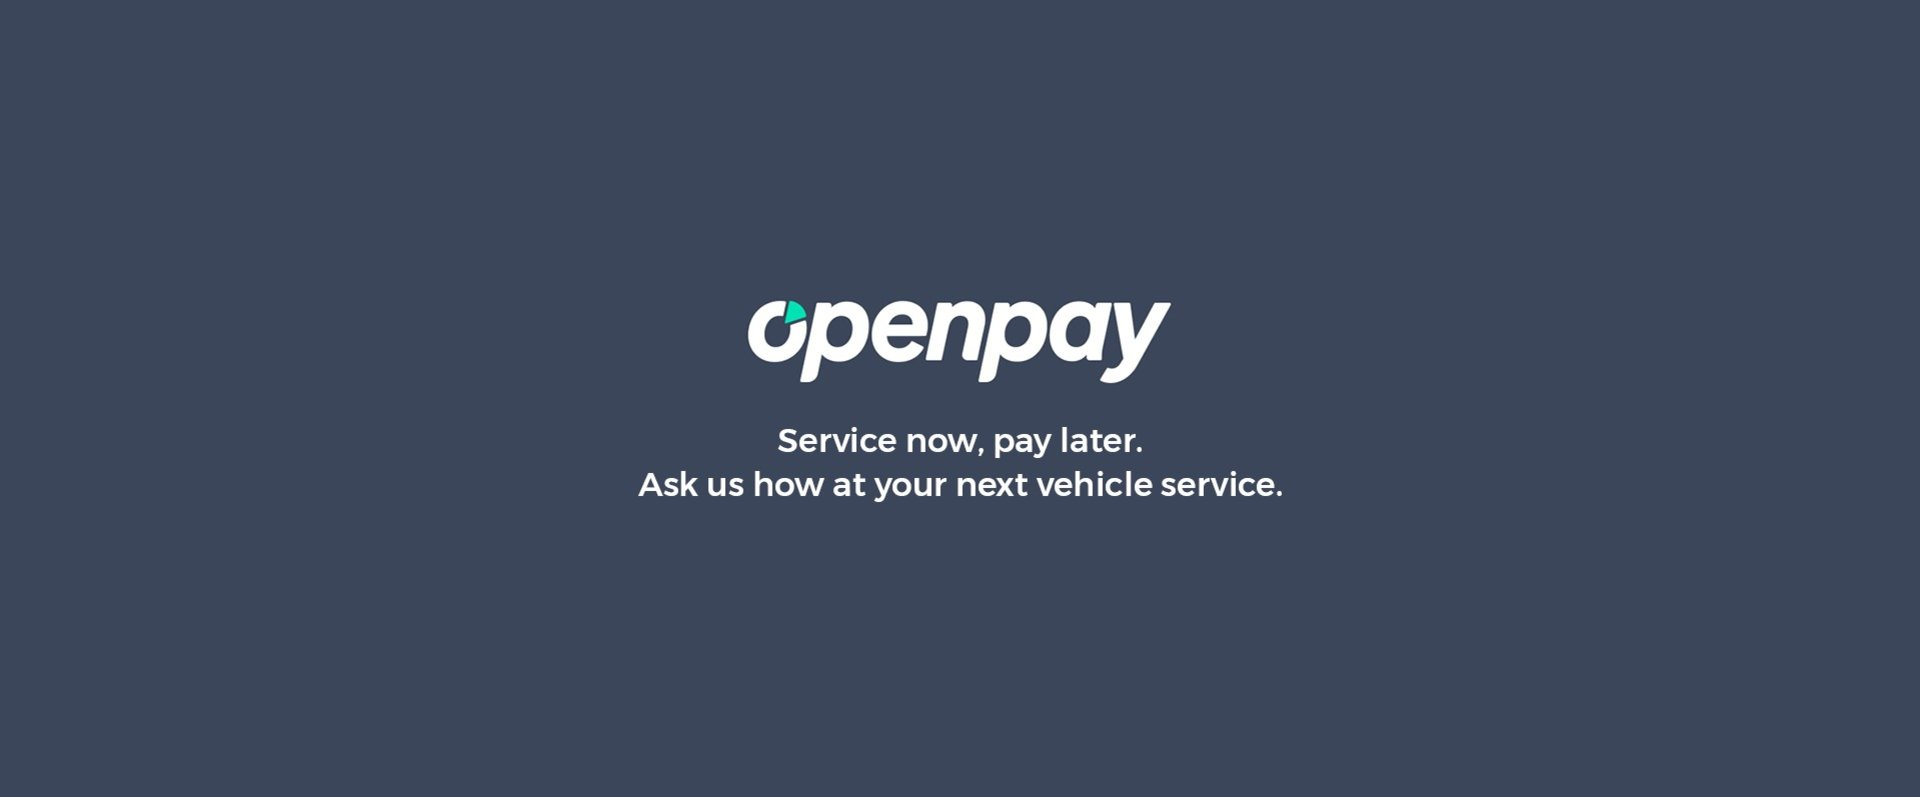 OpenPay. Drive now, pay later.